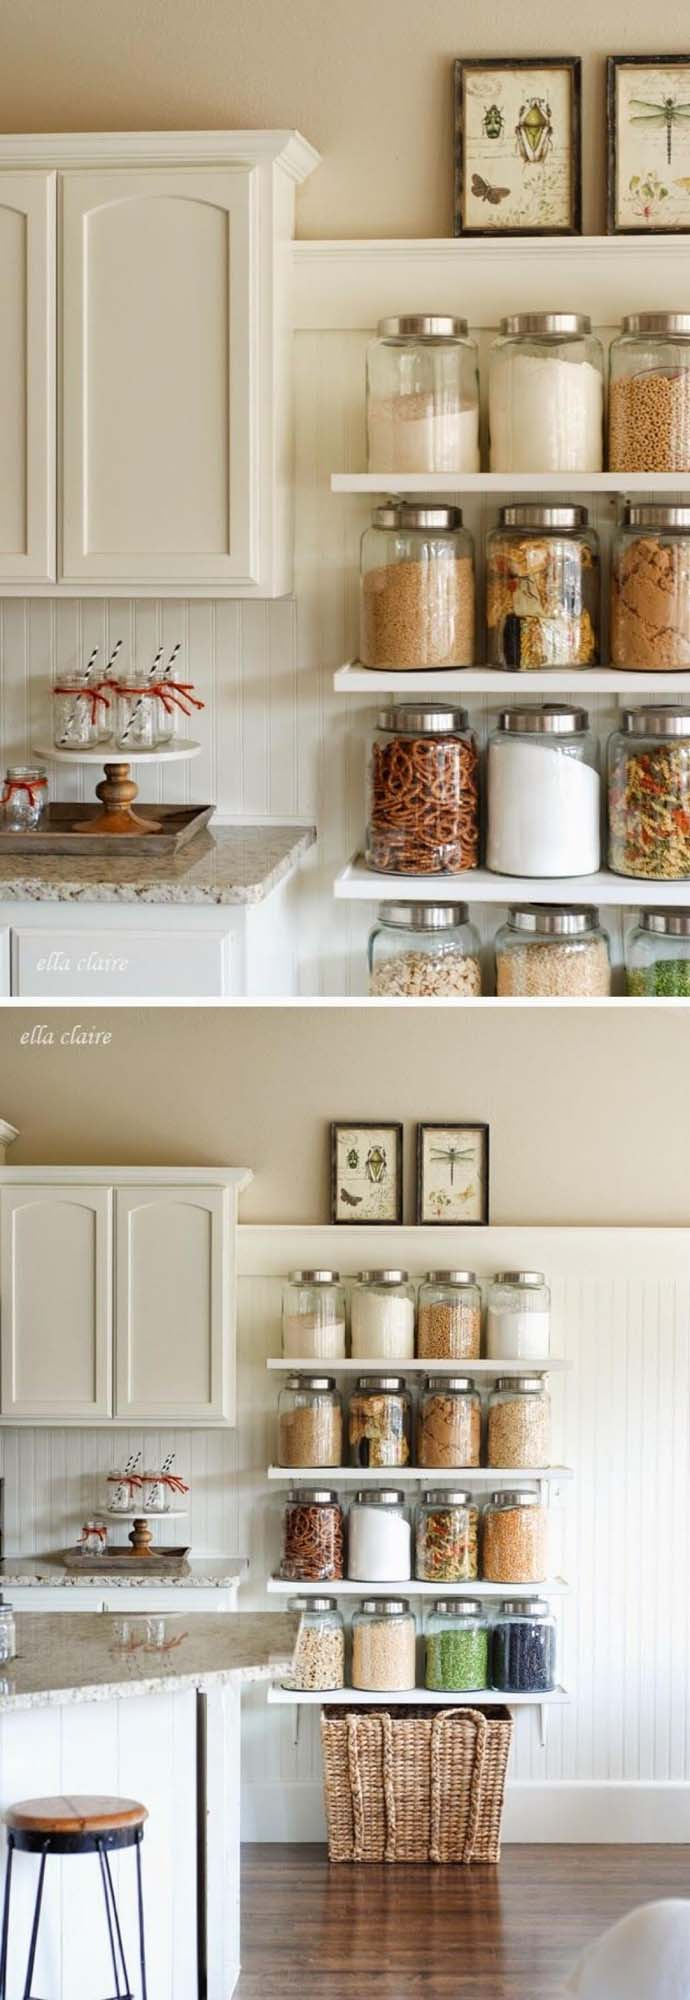 DIY Country Store Kitchen Shelves #smallkitchen #storage #organization #decorhomeideas